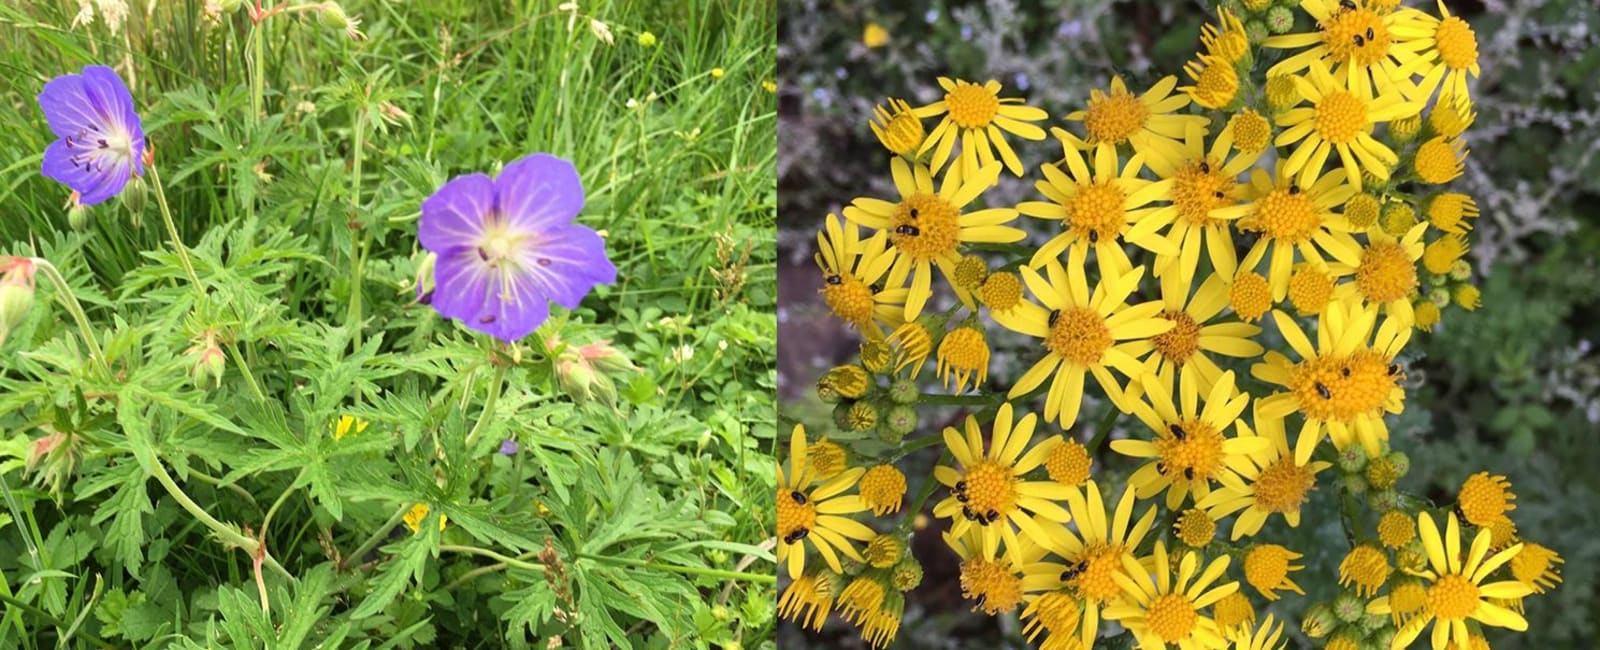 Meadow cranesbill and ragwort